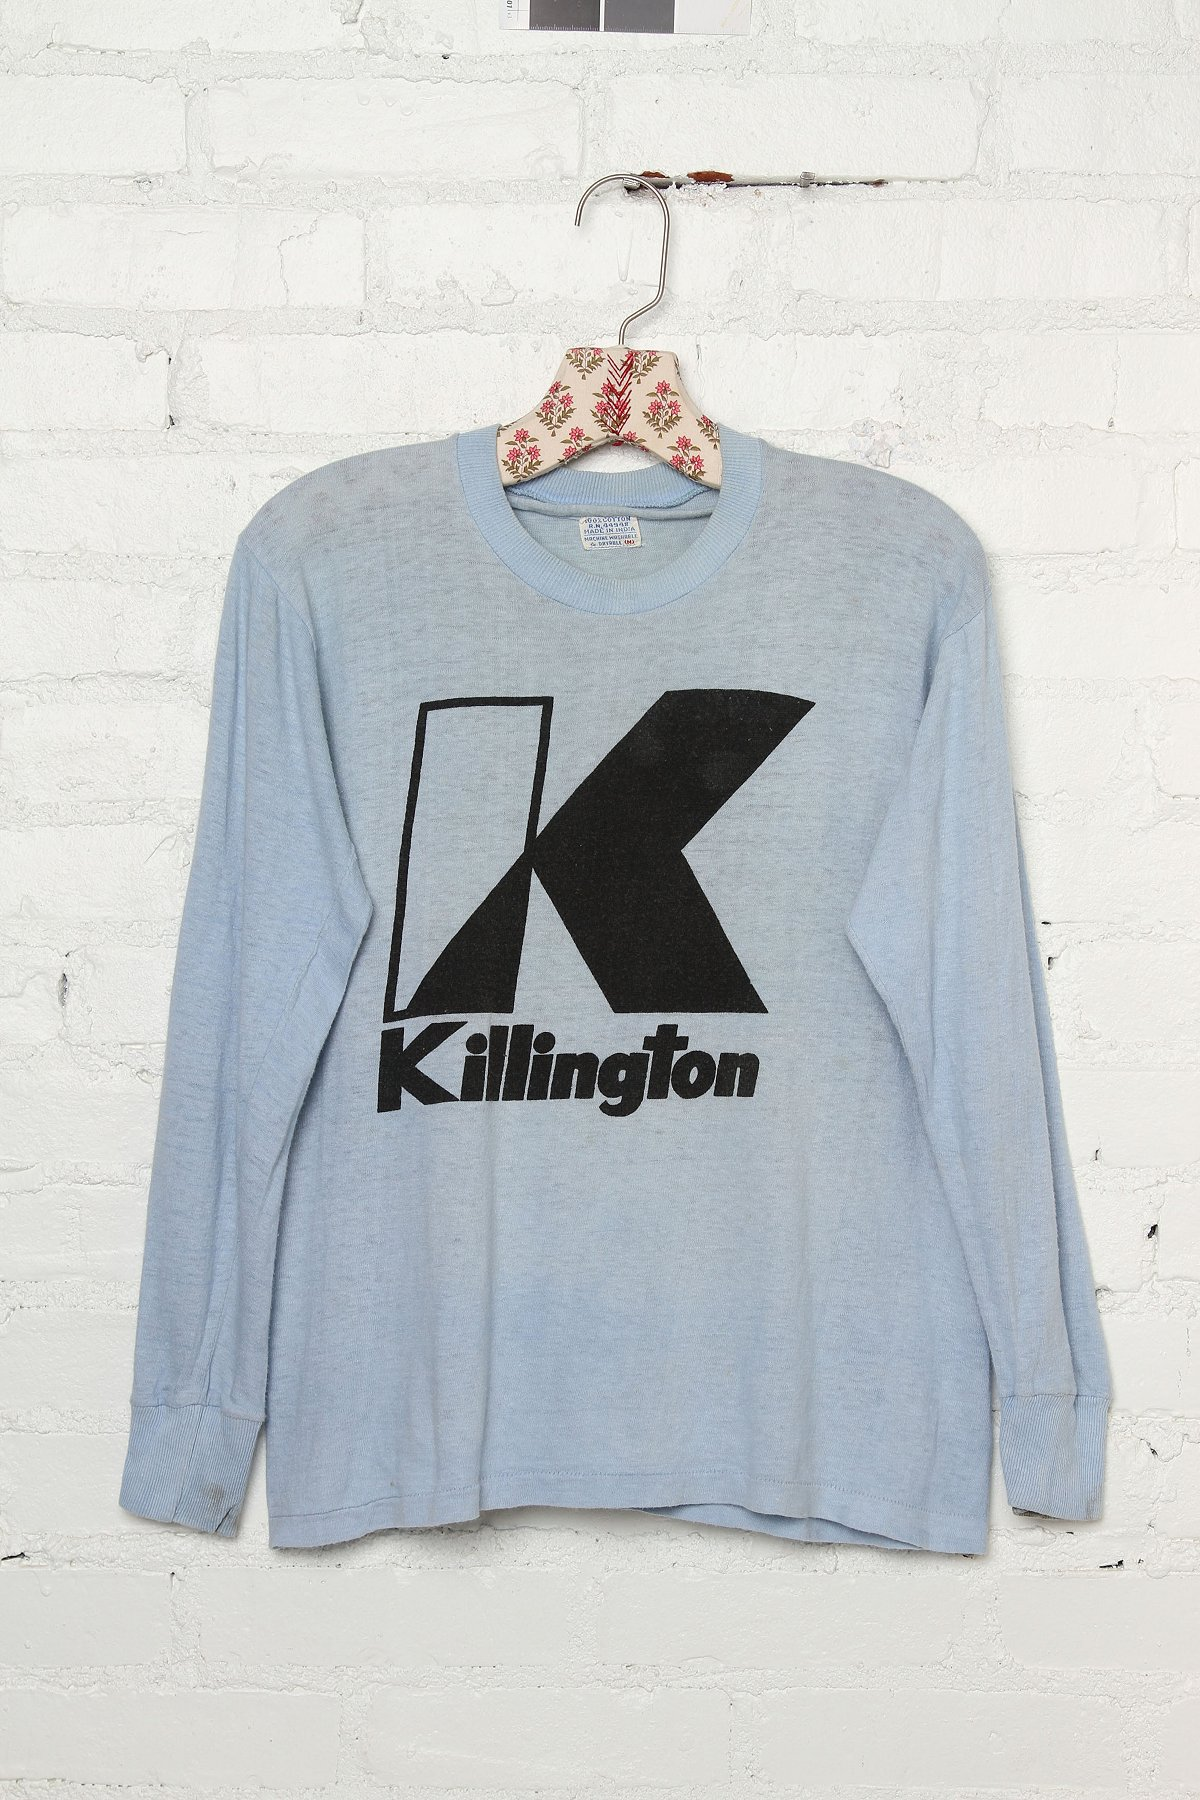 Vintage Killington Long-Sleeve Graphic Tee